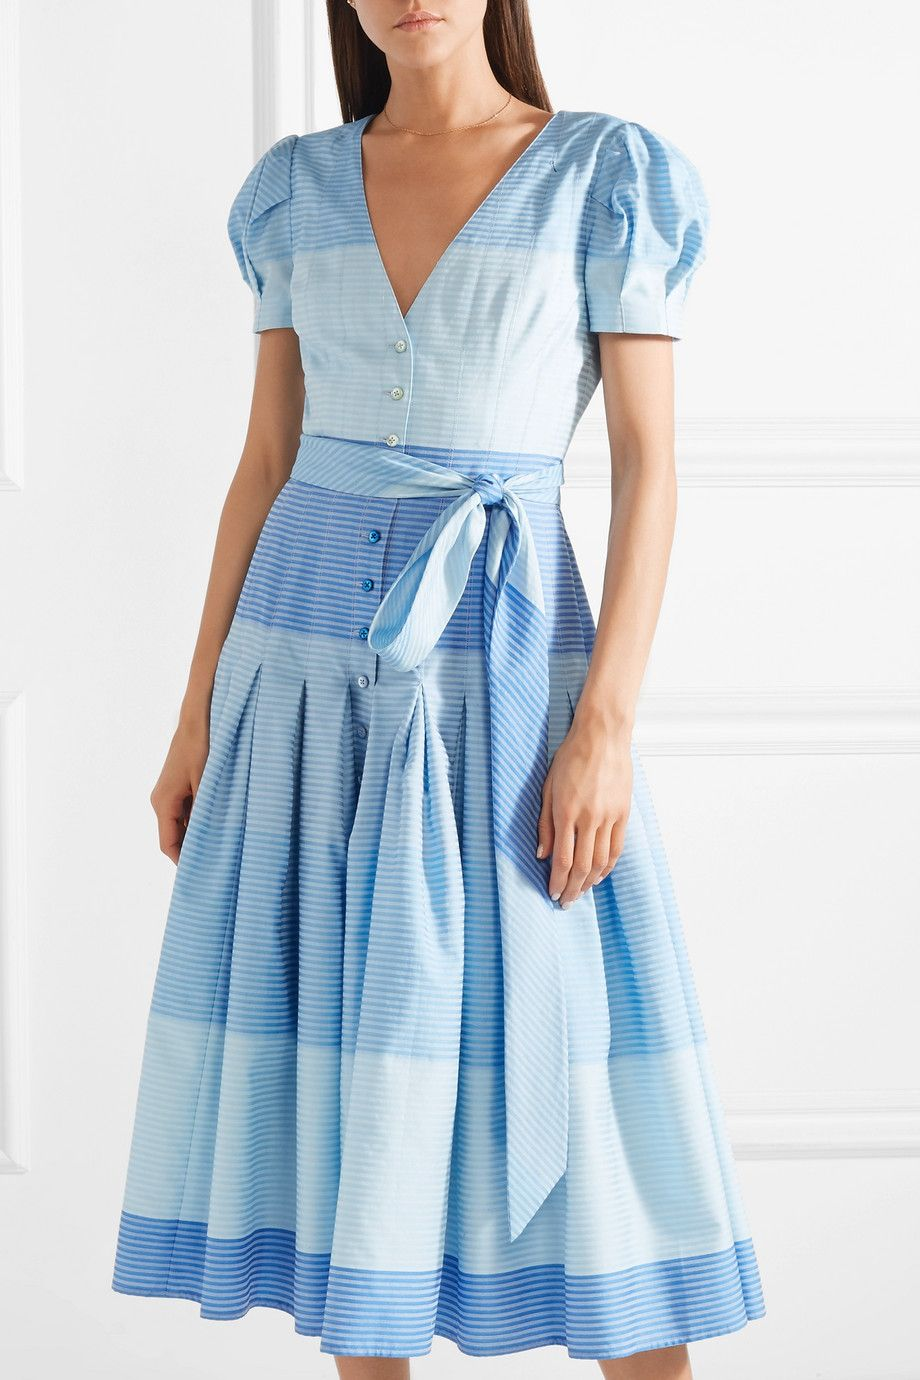 Pleated Striped Cotton Midi Dress - Blue Carolina Herrera 22ZigWk